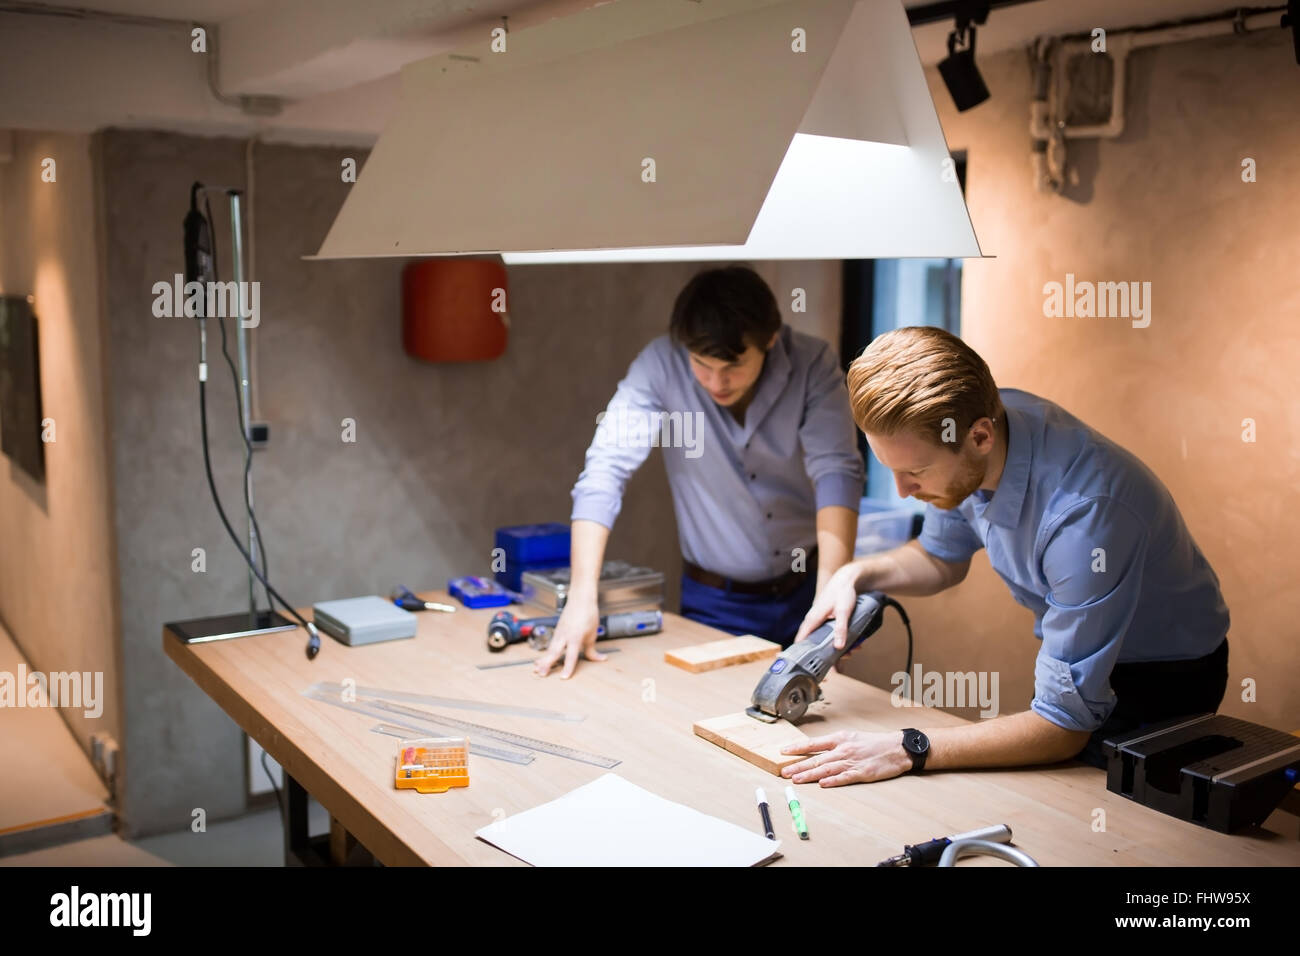 Two creative designers working in workshop with precision tools manufacturing a new product - Stock Image